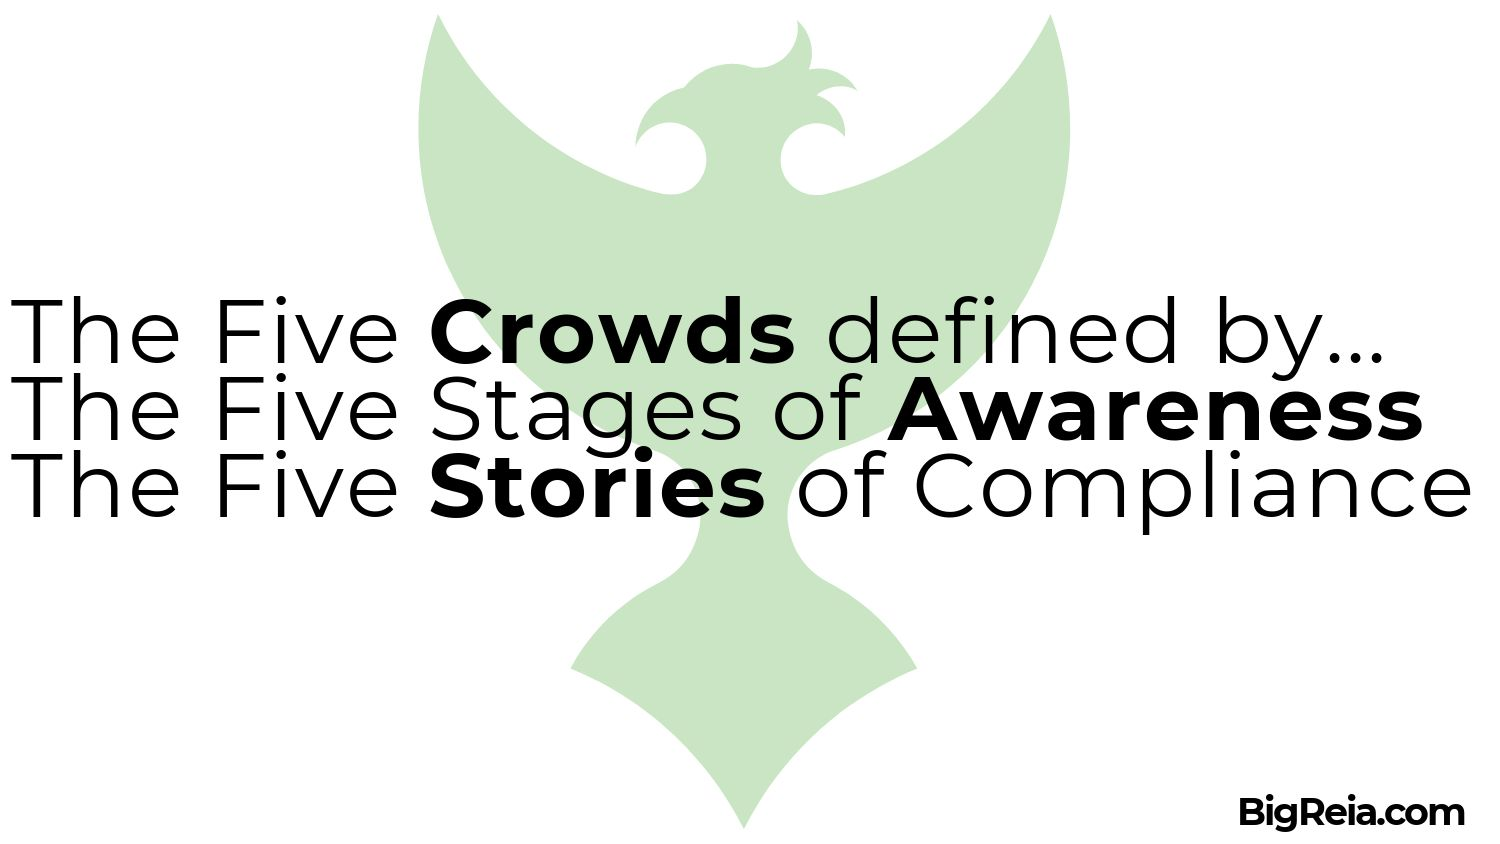 Five Crowds, Five Stages of Awareness and Five Stories of Compliance